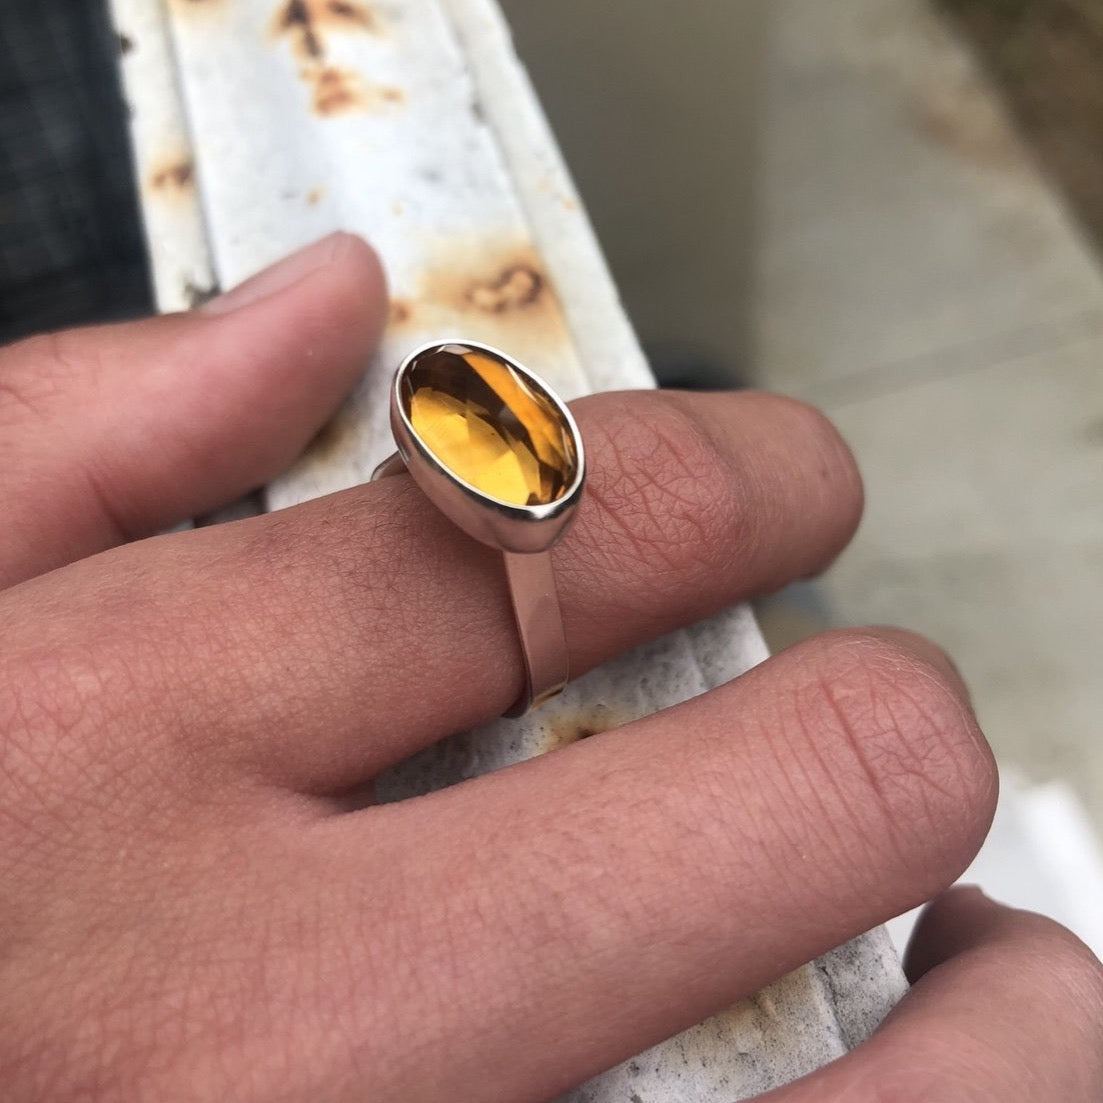 High seat oval citrine ring-serena kojimoto studio